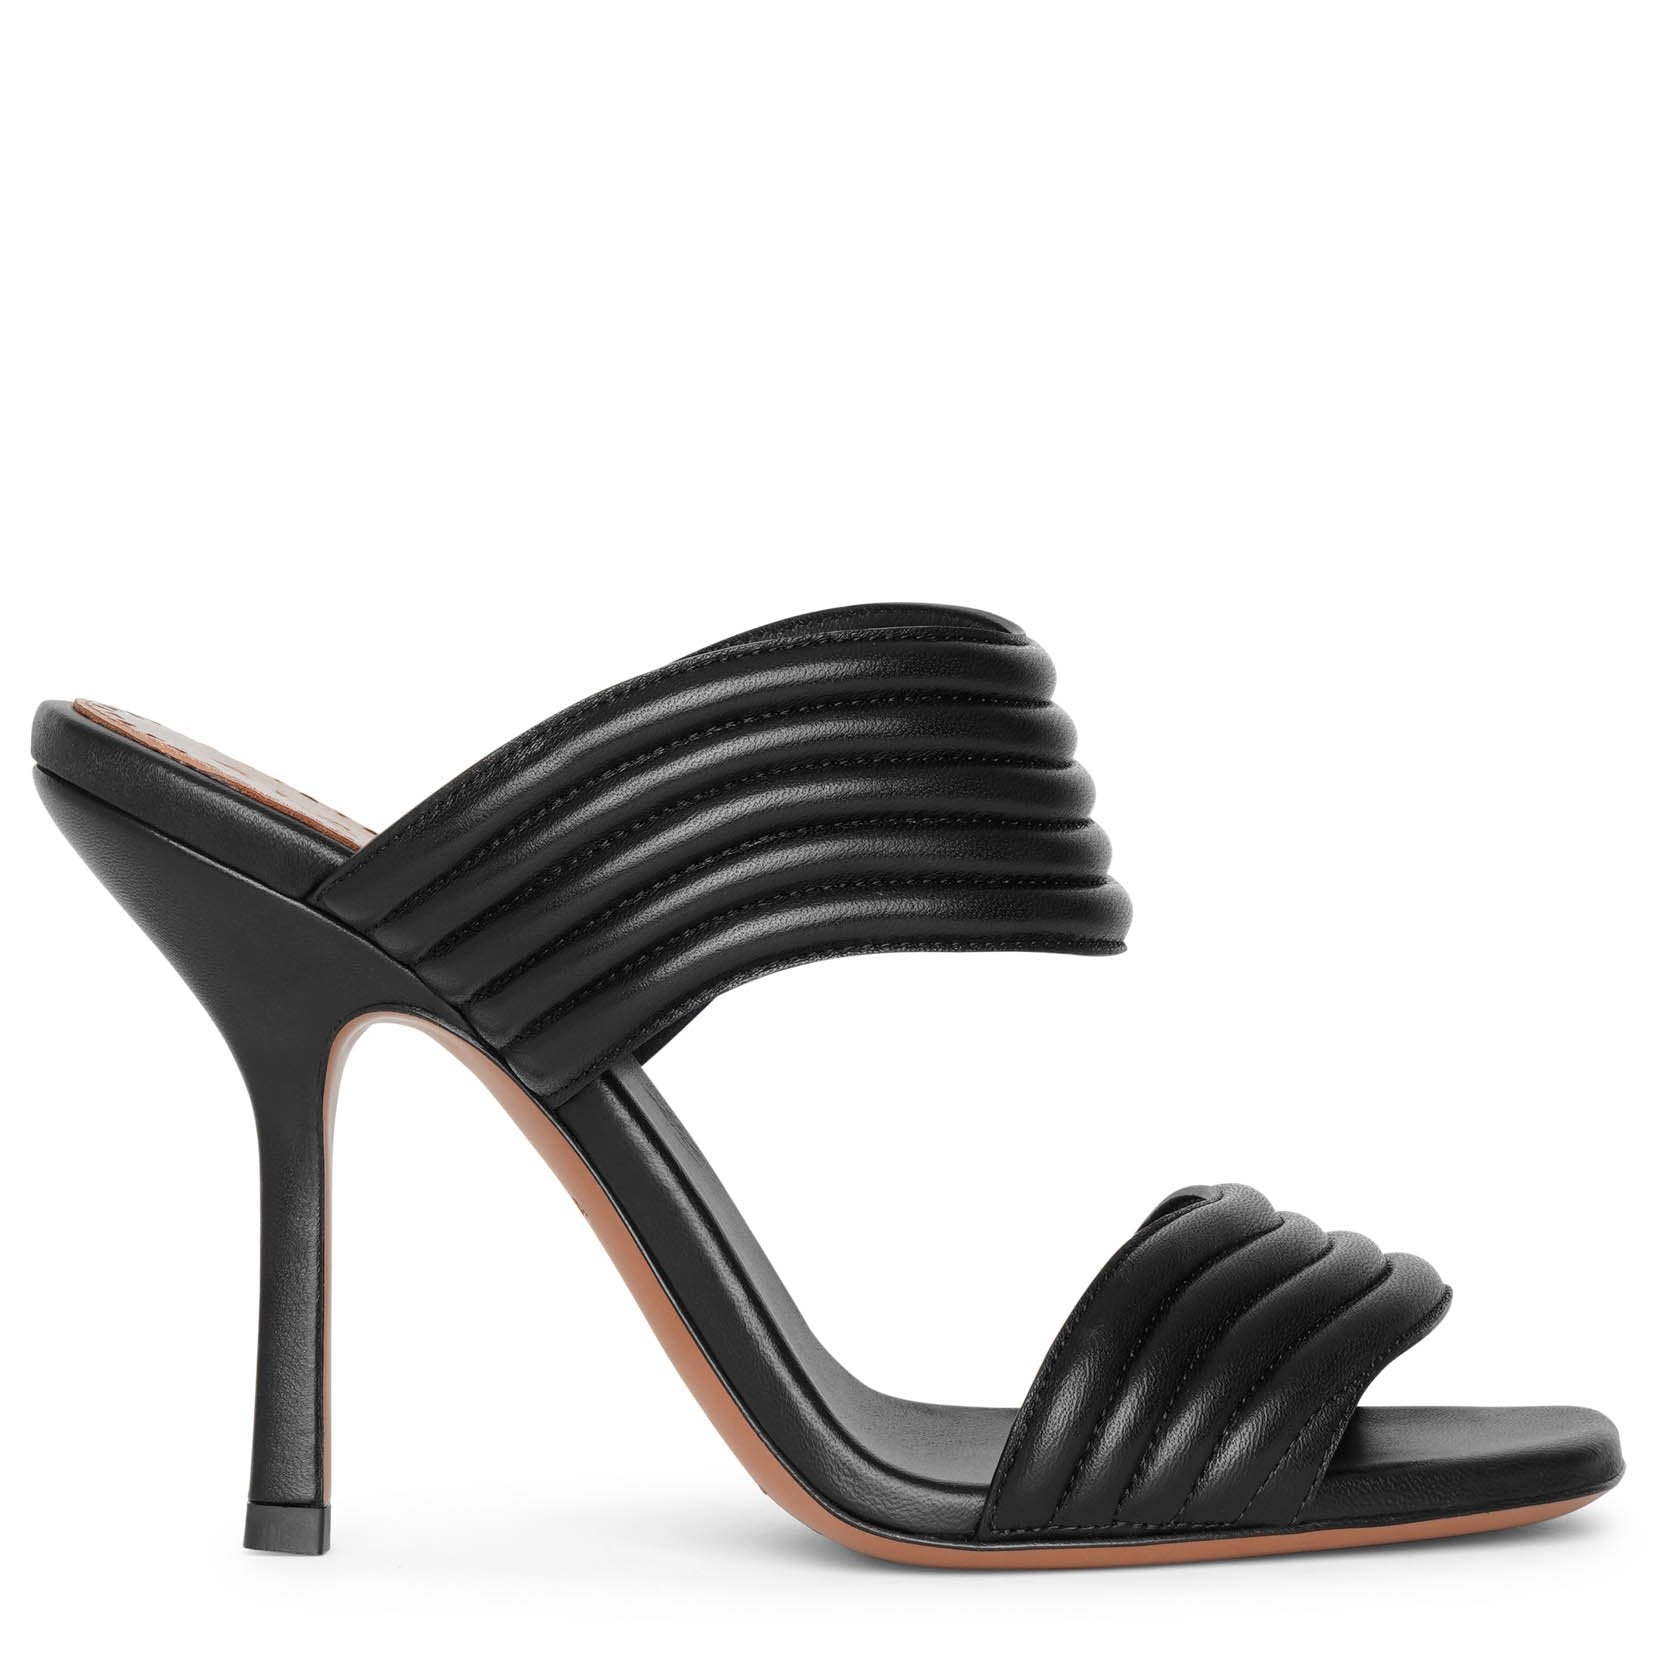 Alaïa Black leather mule sandals